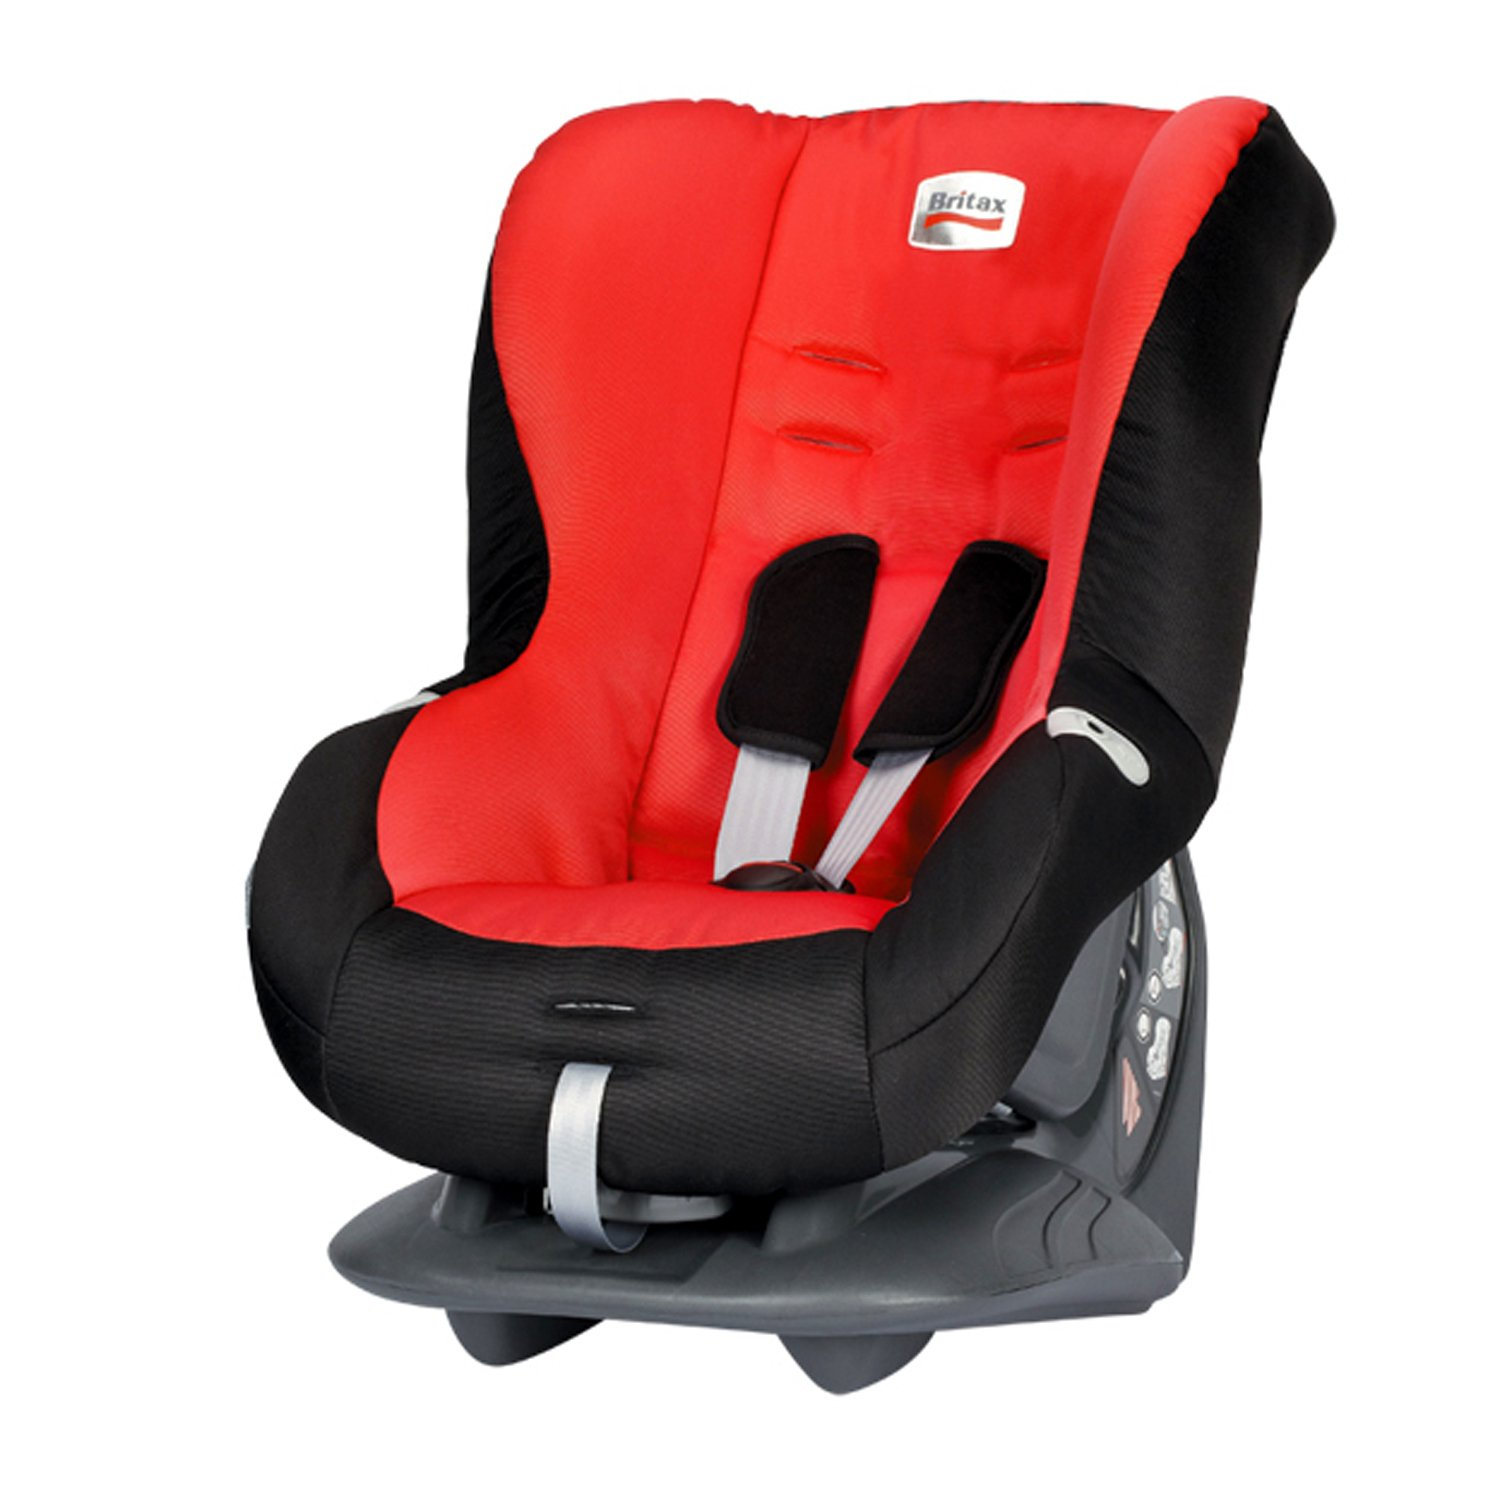 britax eclipse group 1 car seat lisa red amazon co uk baby rh amazon co uk Eclipse User Guide.pdf Baby Lock Sergers